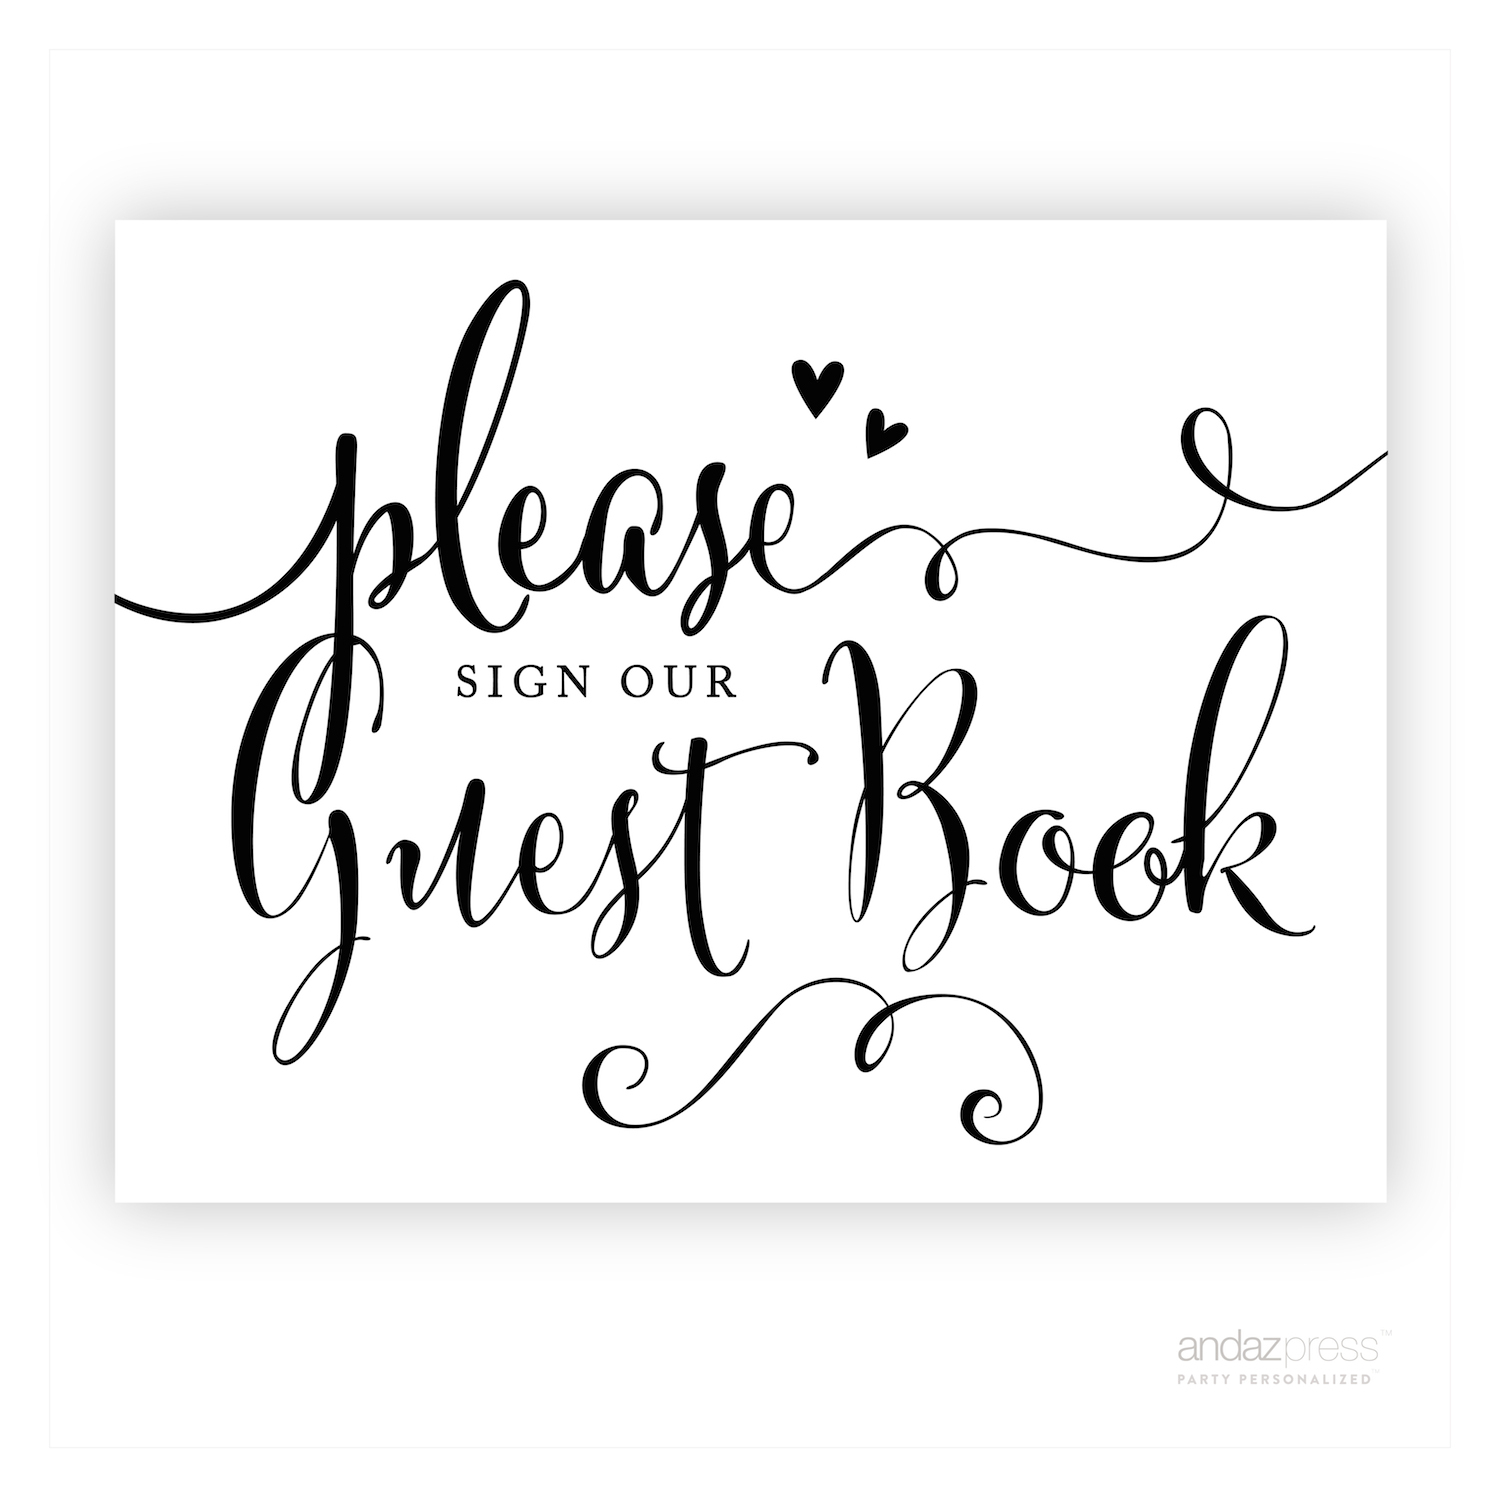 Andaz Press Wedding Ceremony And Reception Party Signs – Bride - Please Sign Our Guestbook Free Printable